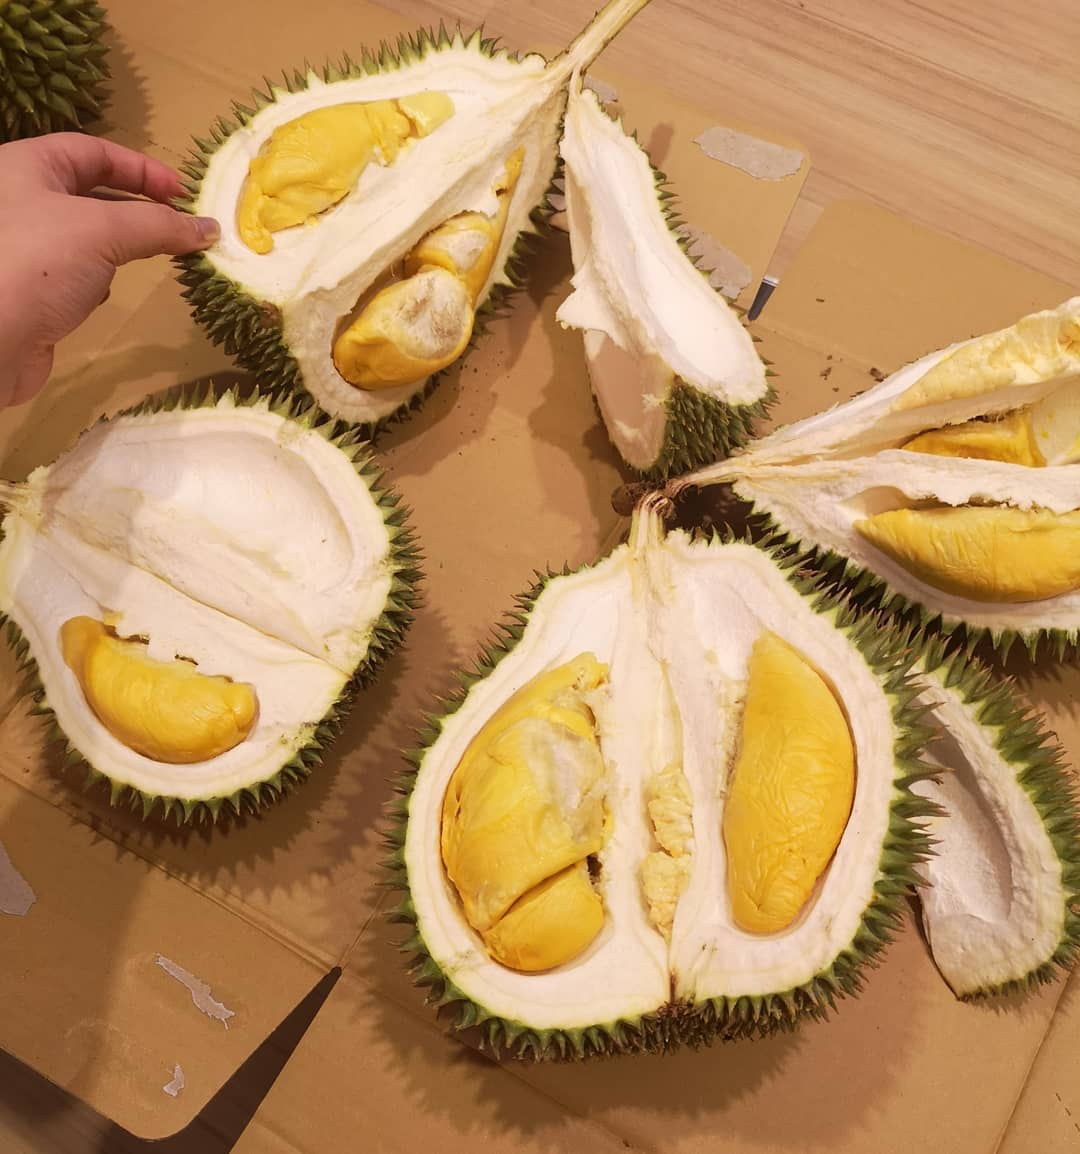 malay words - durian